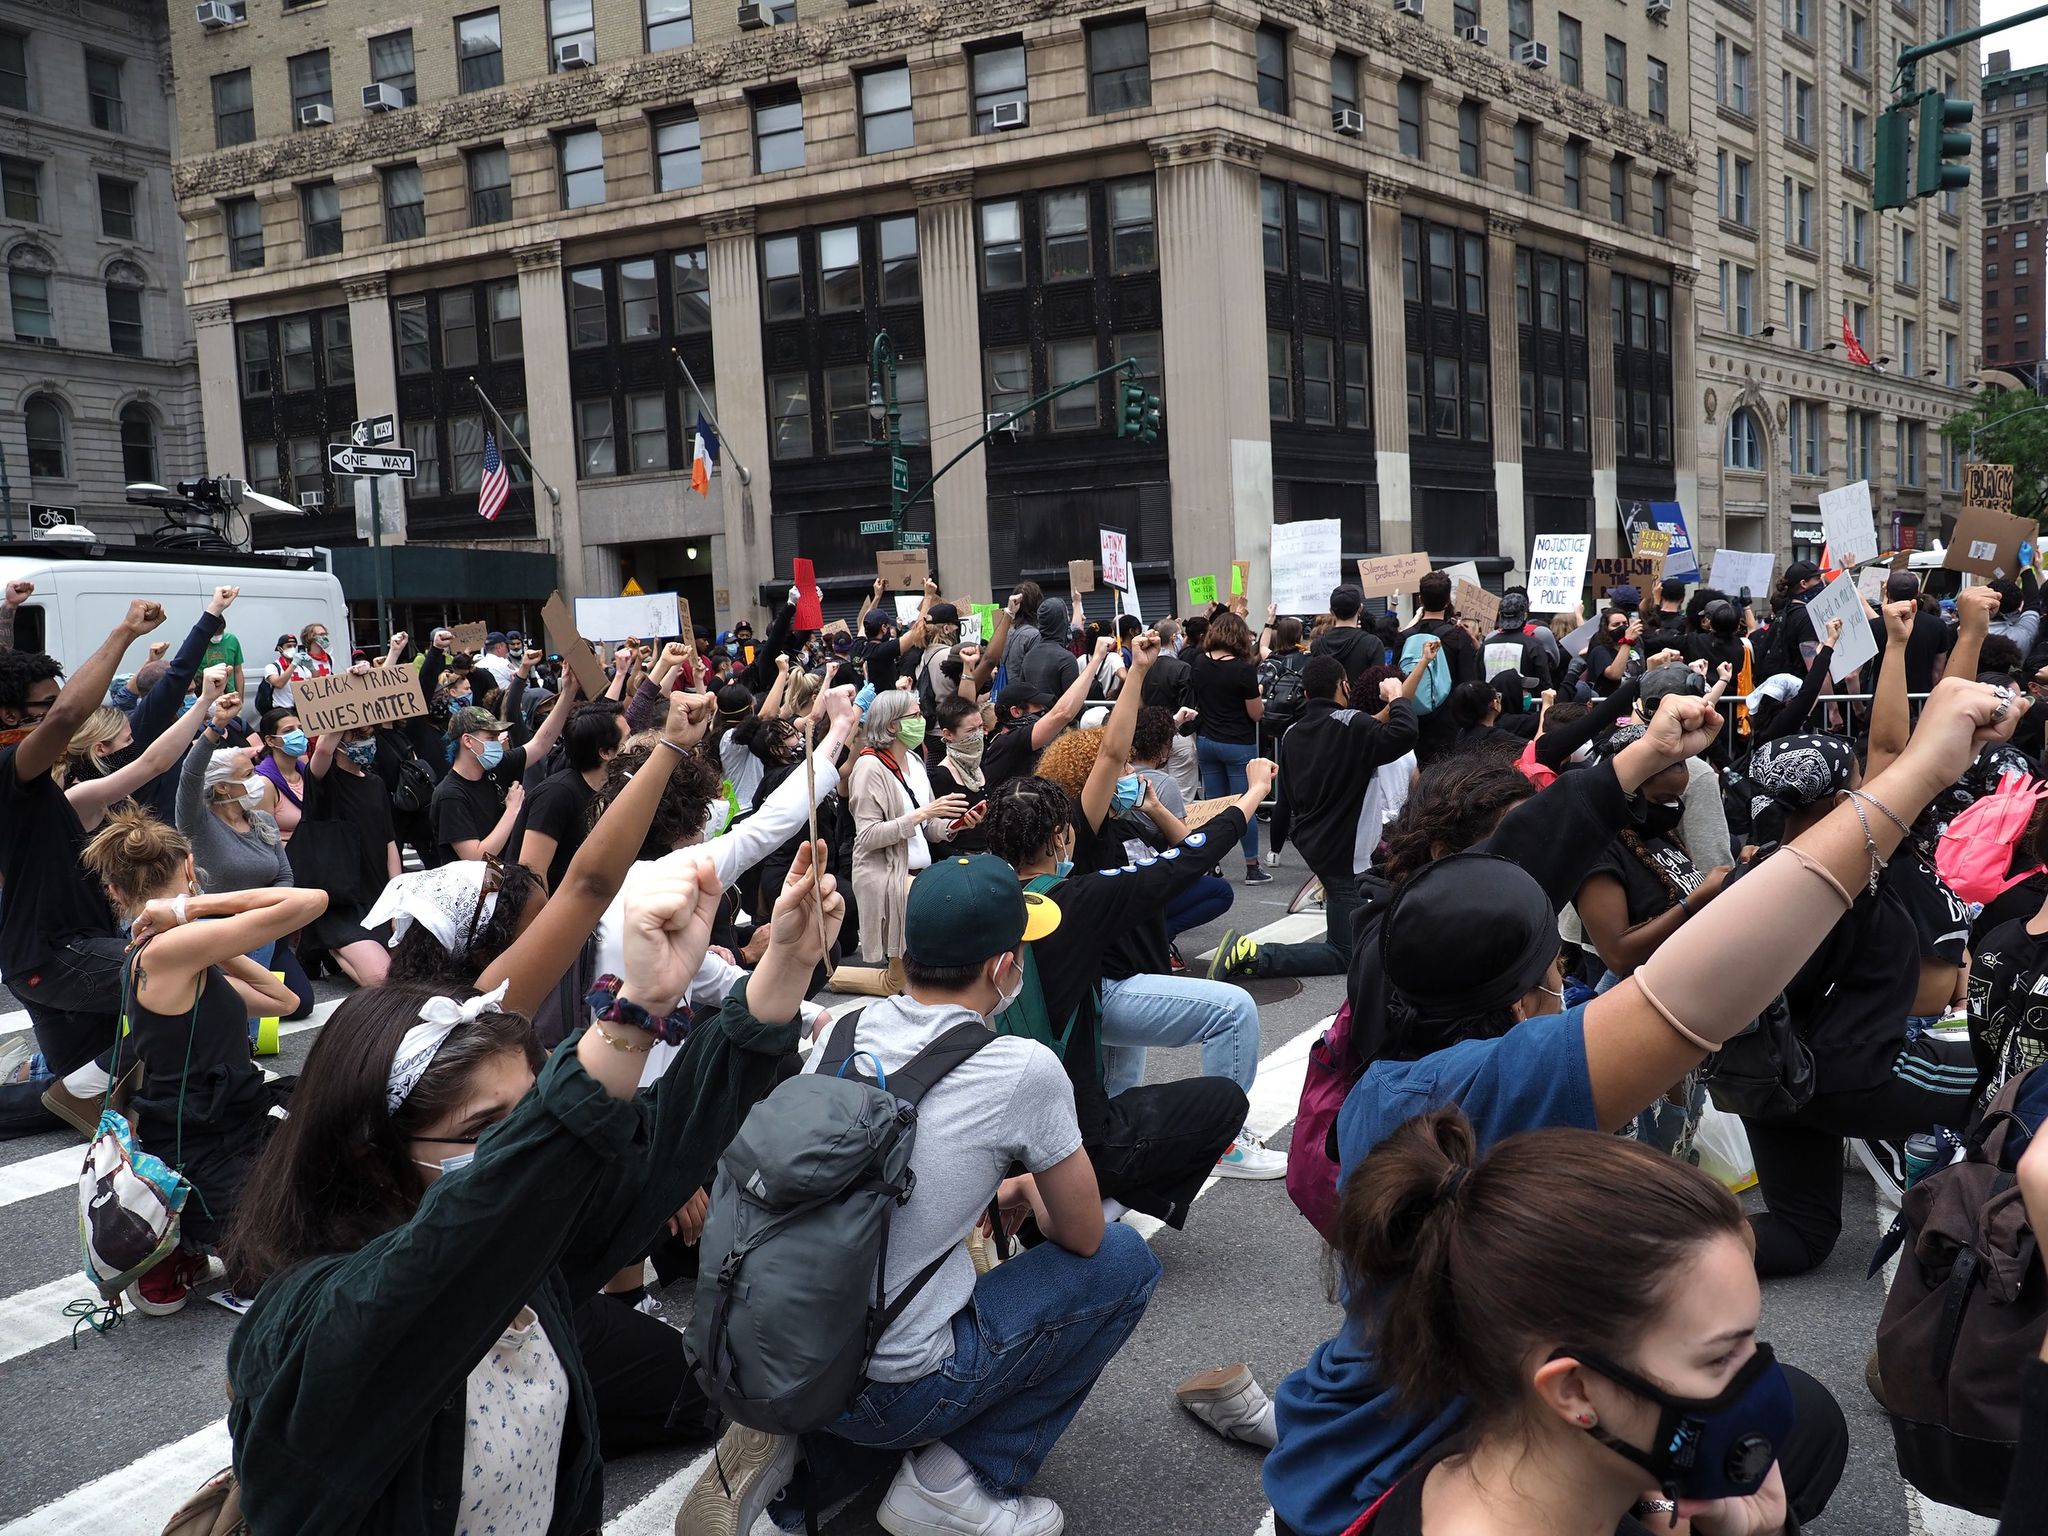 Protestors during a Black Lives Matter protest in Foley Square.